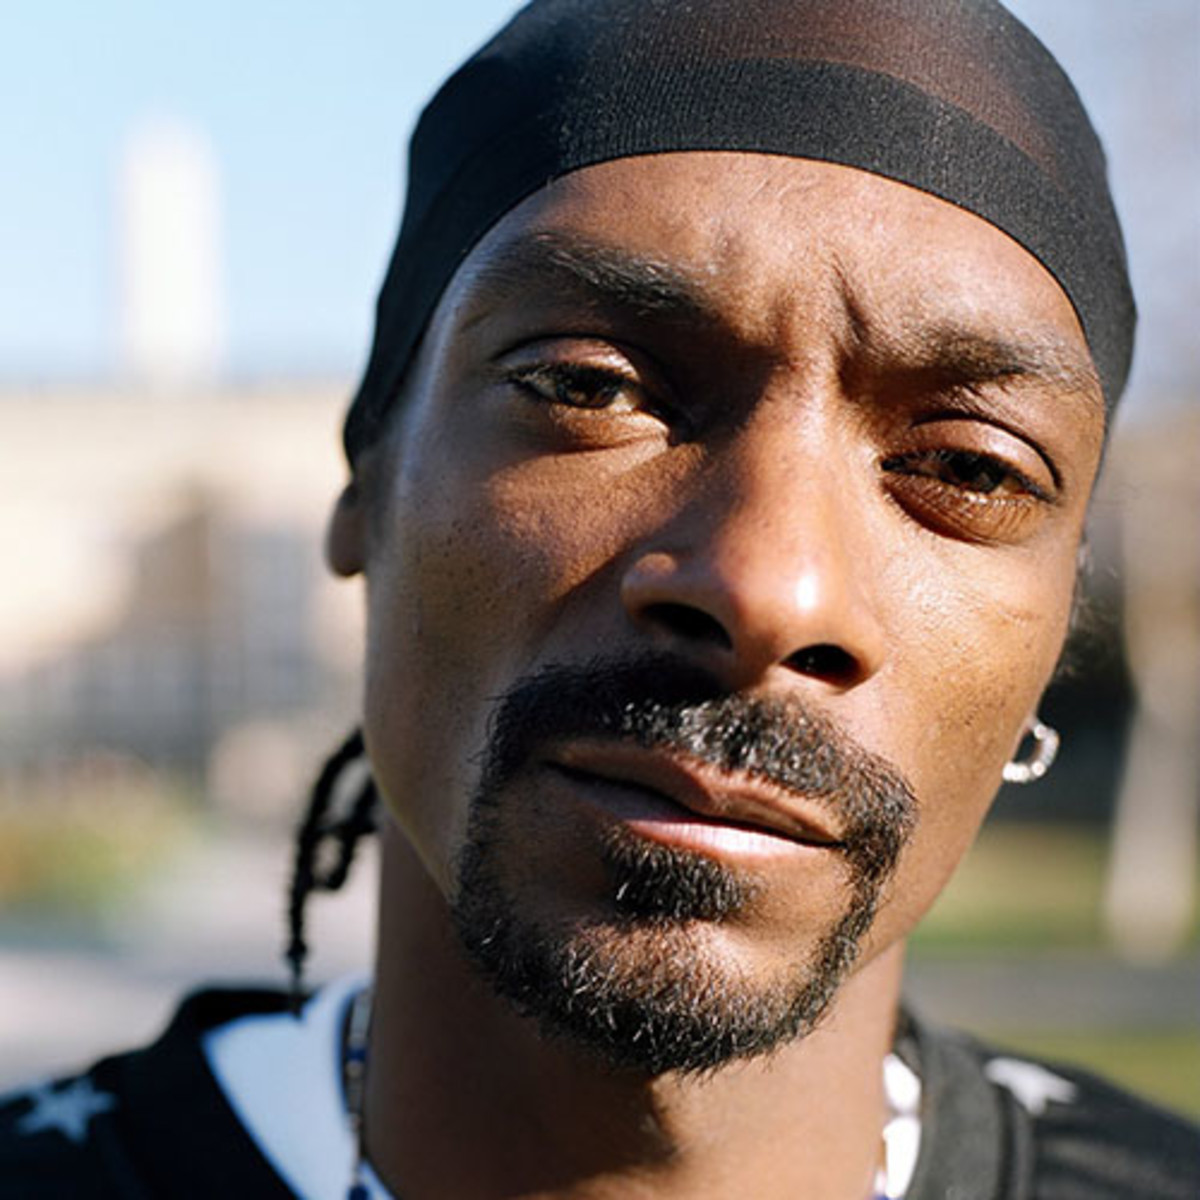 دانلود آهنگ جدید Snoop Dogg به نام What Is This (Feat October London)